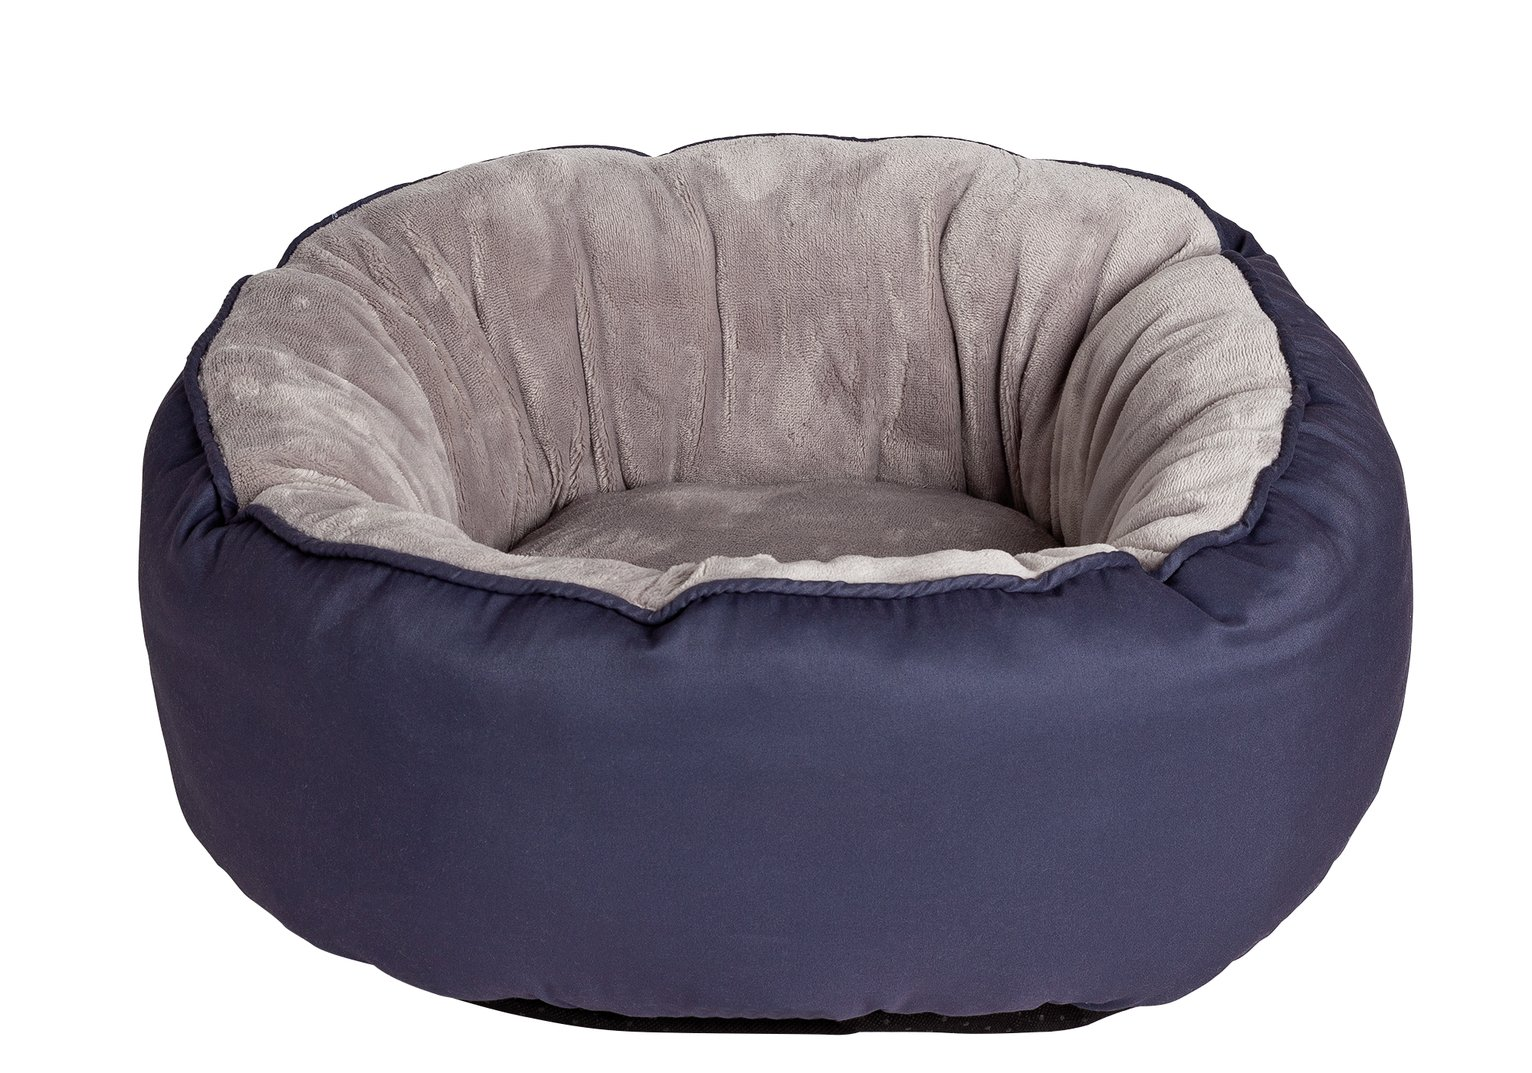 King Pets Grey Snuggle Donut